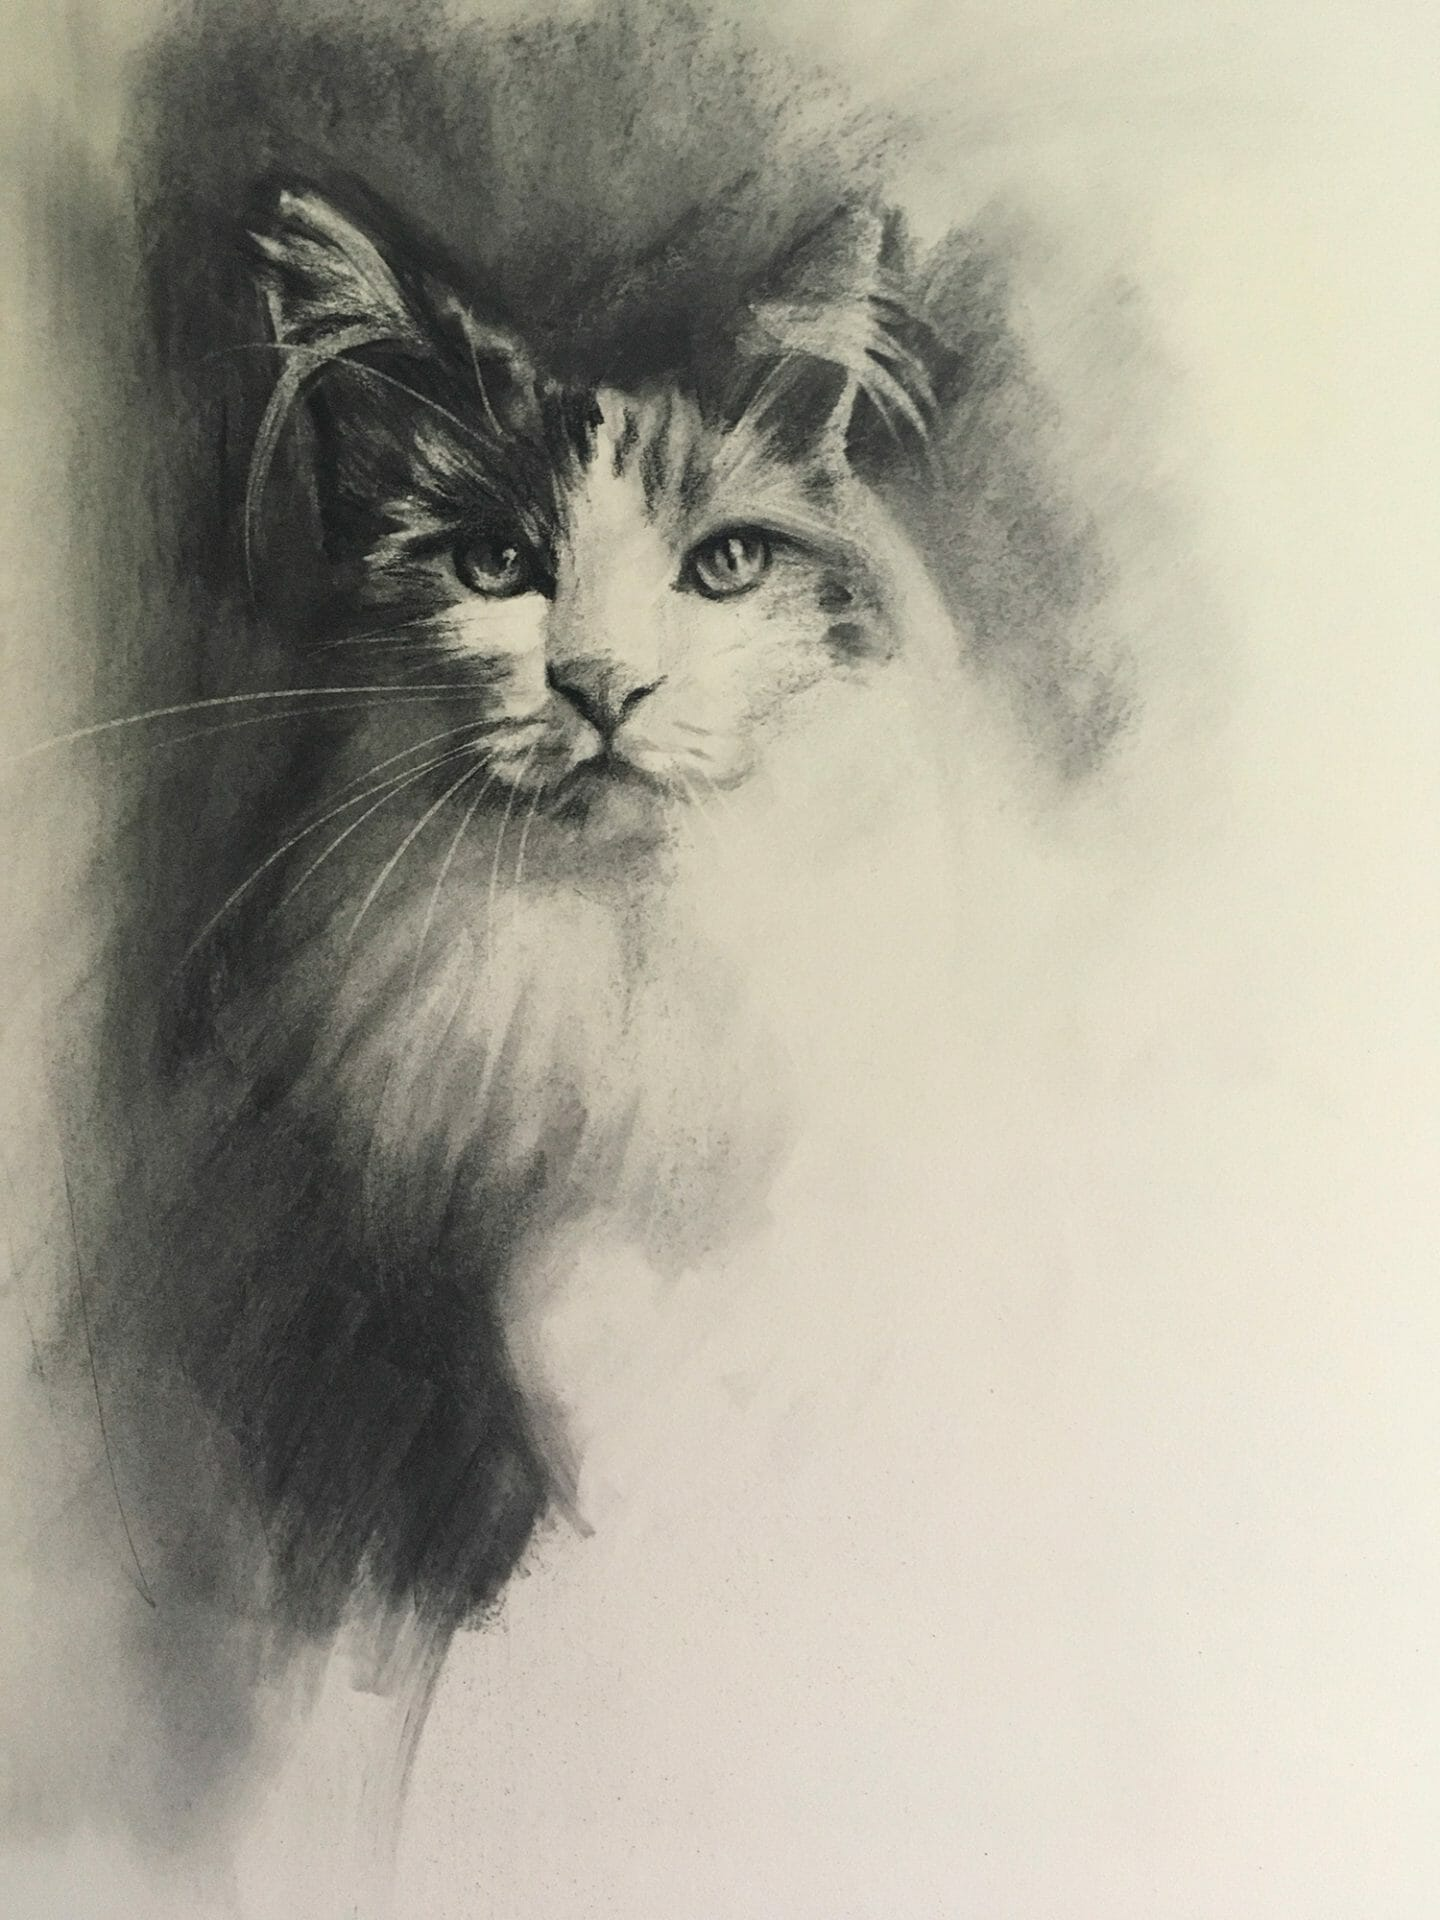 Cat study charcoal by Lisa Acciai